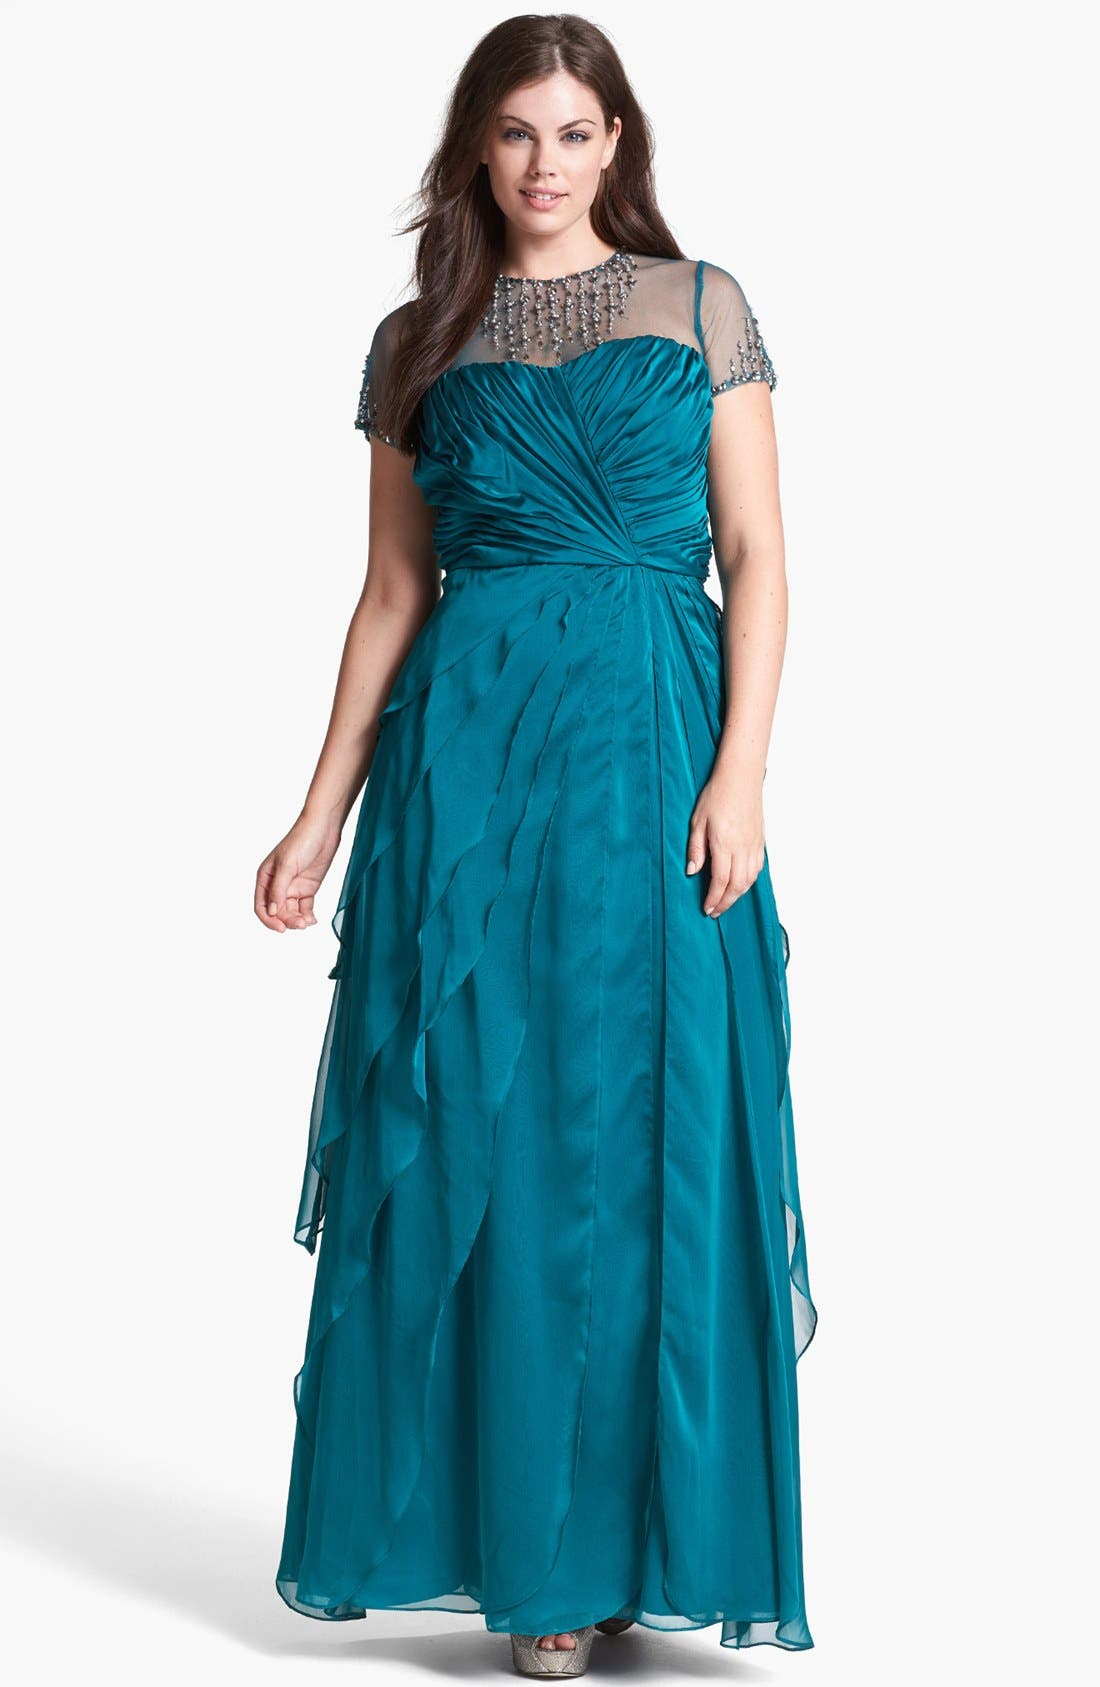 Alternate Image 1 Selected - Adrianna Papell Embellished Yoke Ruffled Charmeuse Gown (Plus Size)